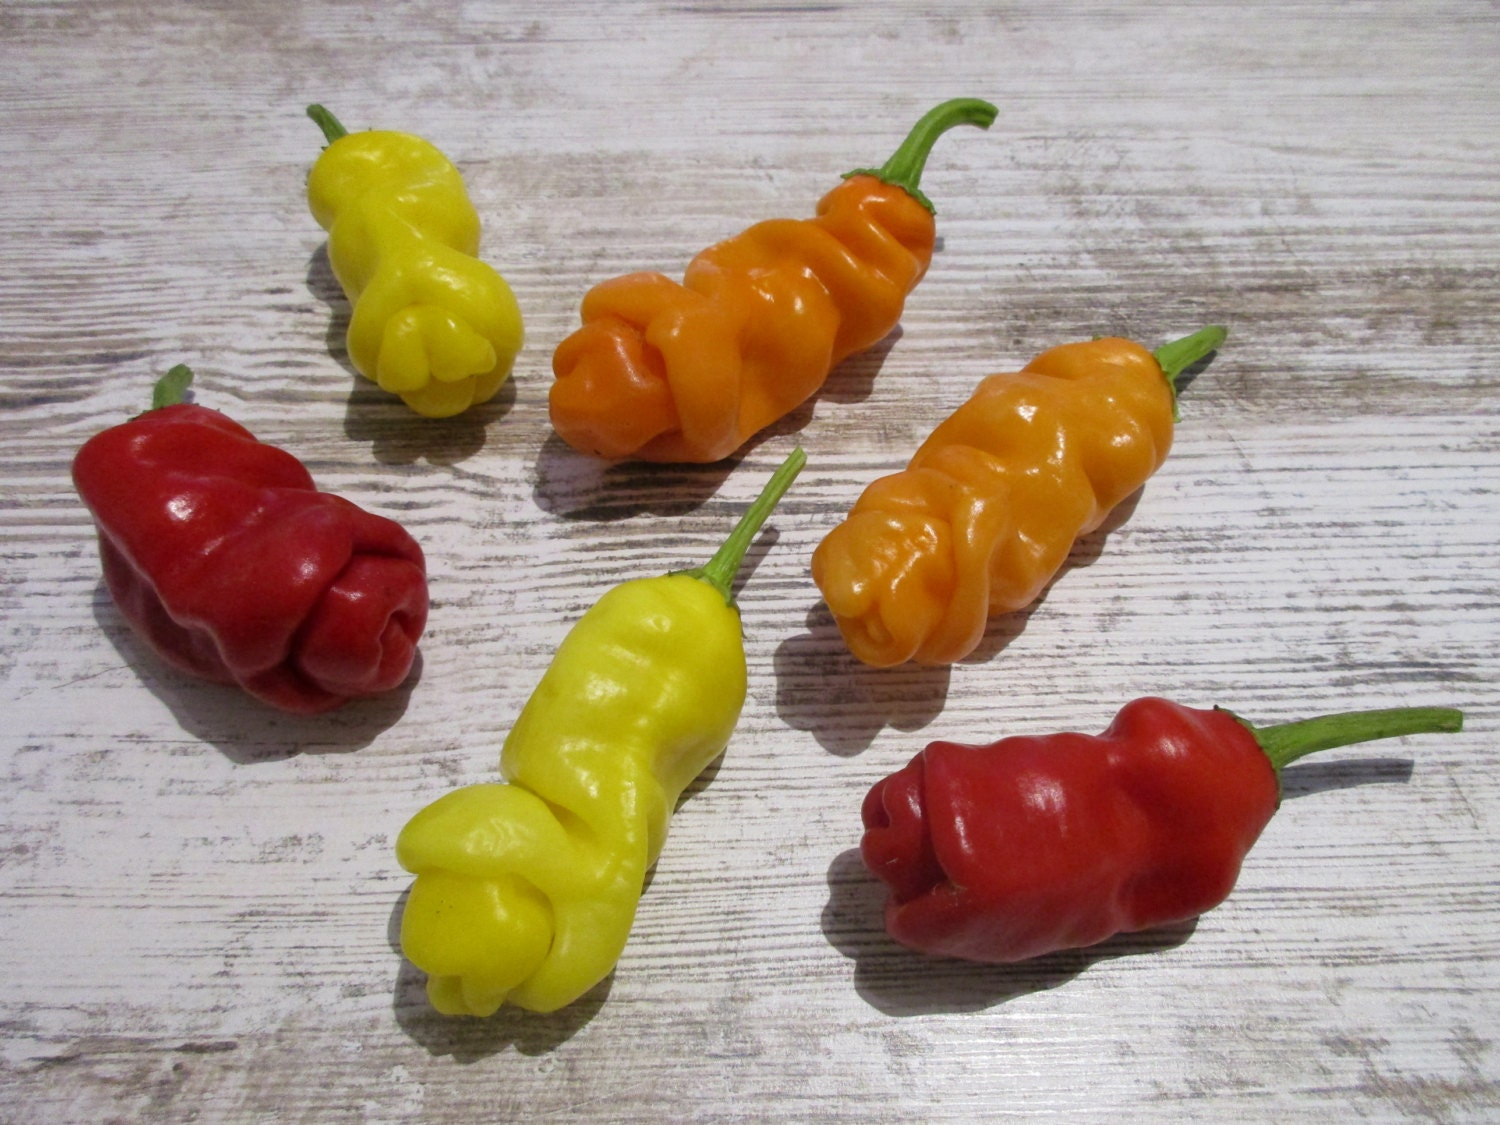 7 Pot Brown Trinidad Scorpion 5 Samen Super HOT Chili Chilisamen